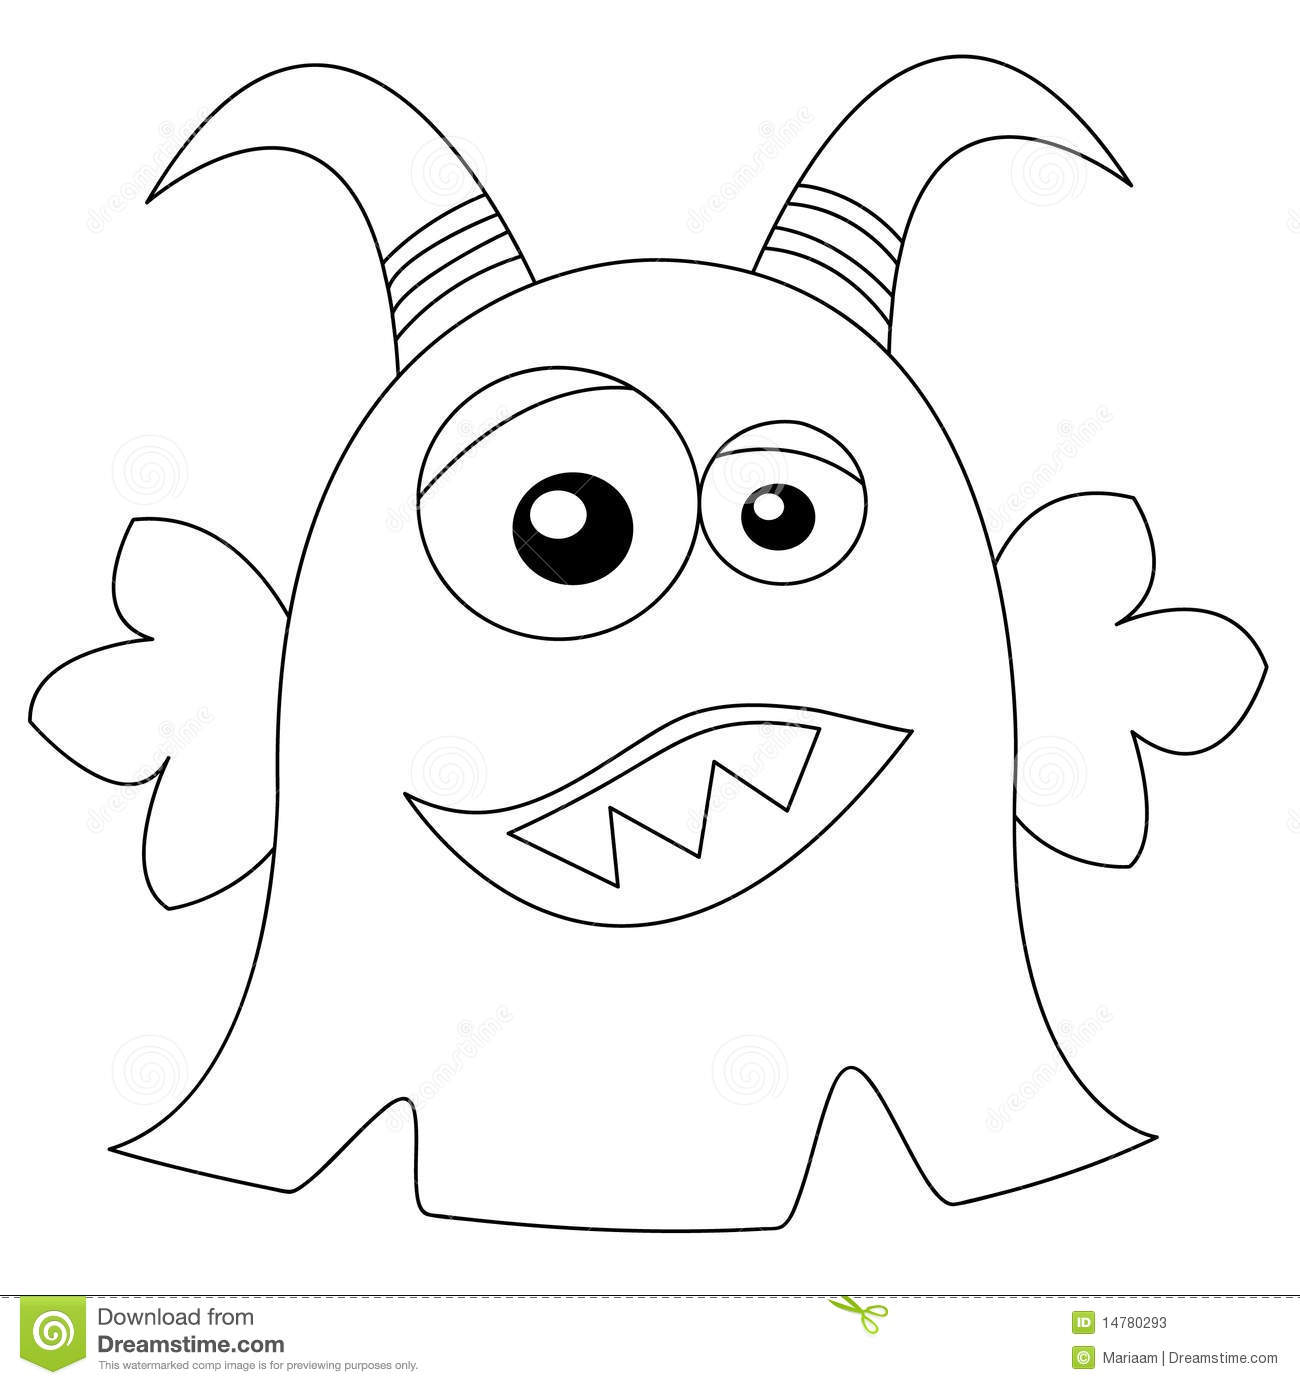 Cute Scary Monsters Coloring Page